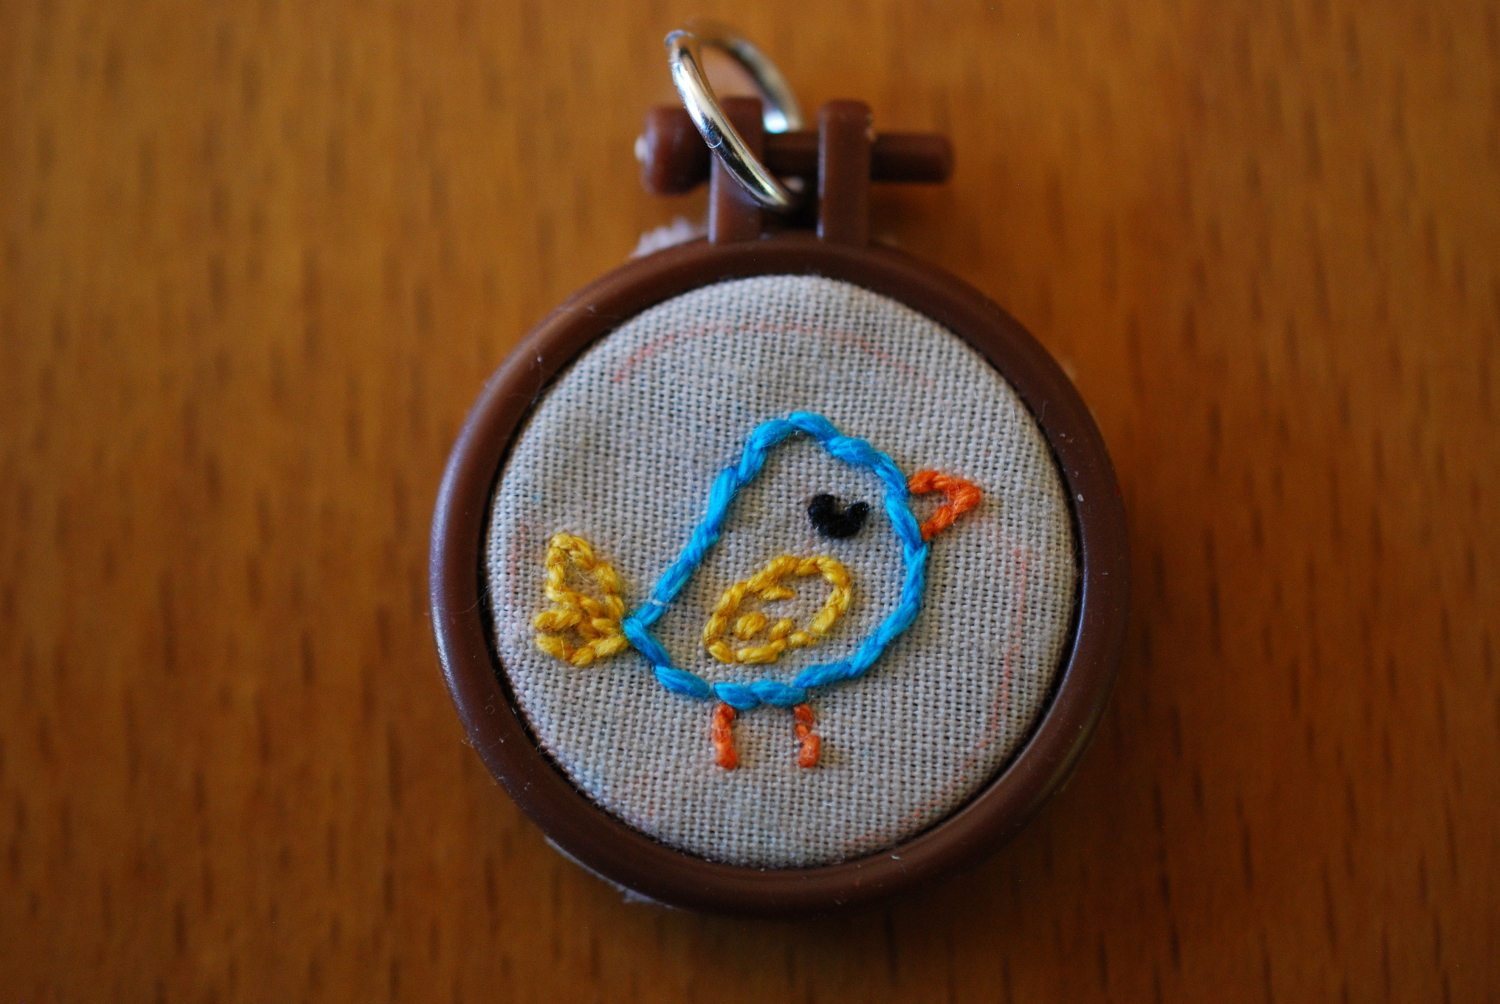 'Tiny Stitches' Gets Your Kids Crafting